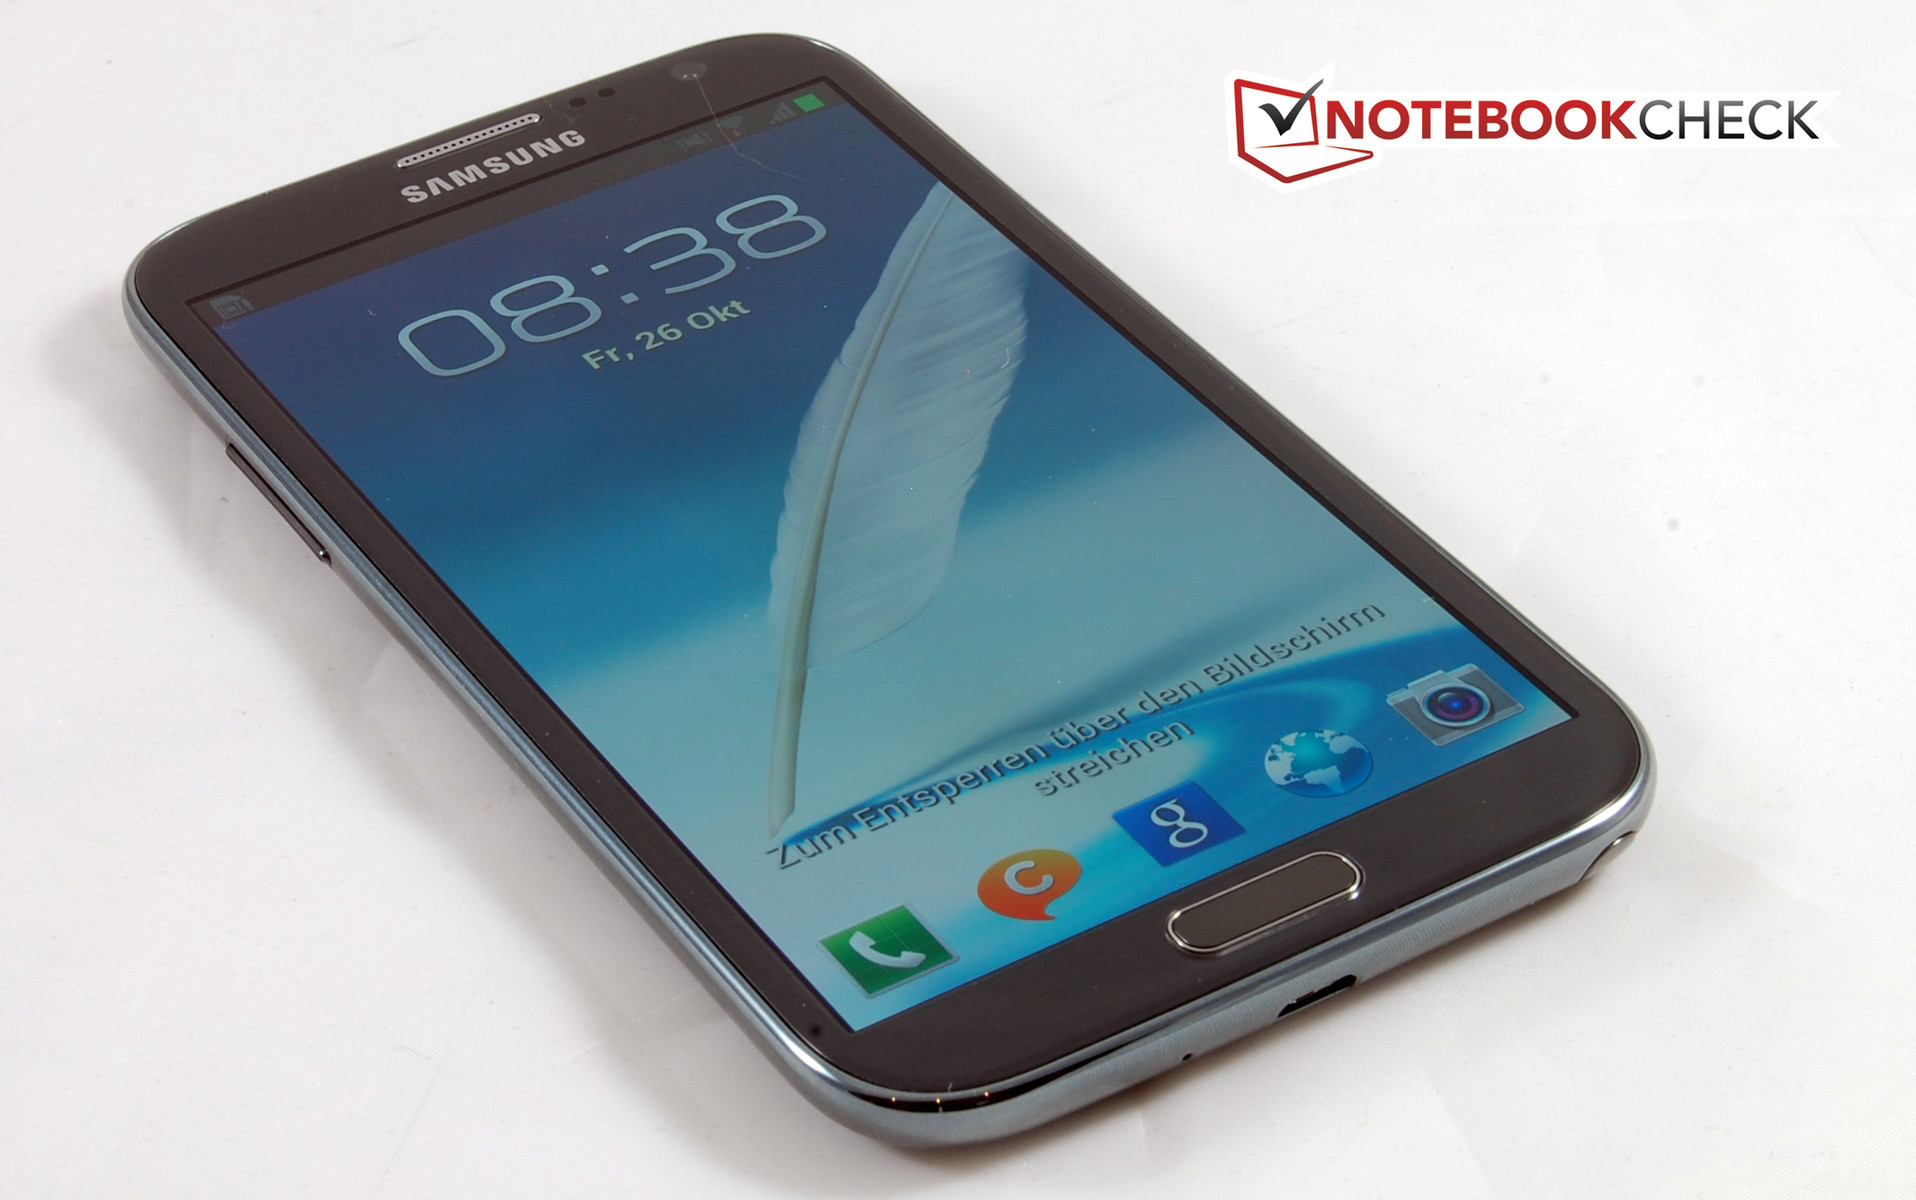 Review Samsung Galaxy Note Ii Gt N7100 Smartphone Notebookcheck Circuit Board 2 Best Durable Case Cell Phones The Big Screen Is Beneficial For